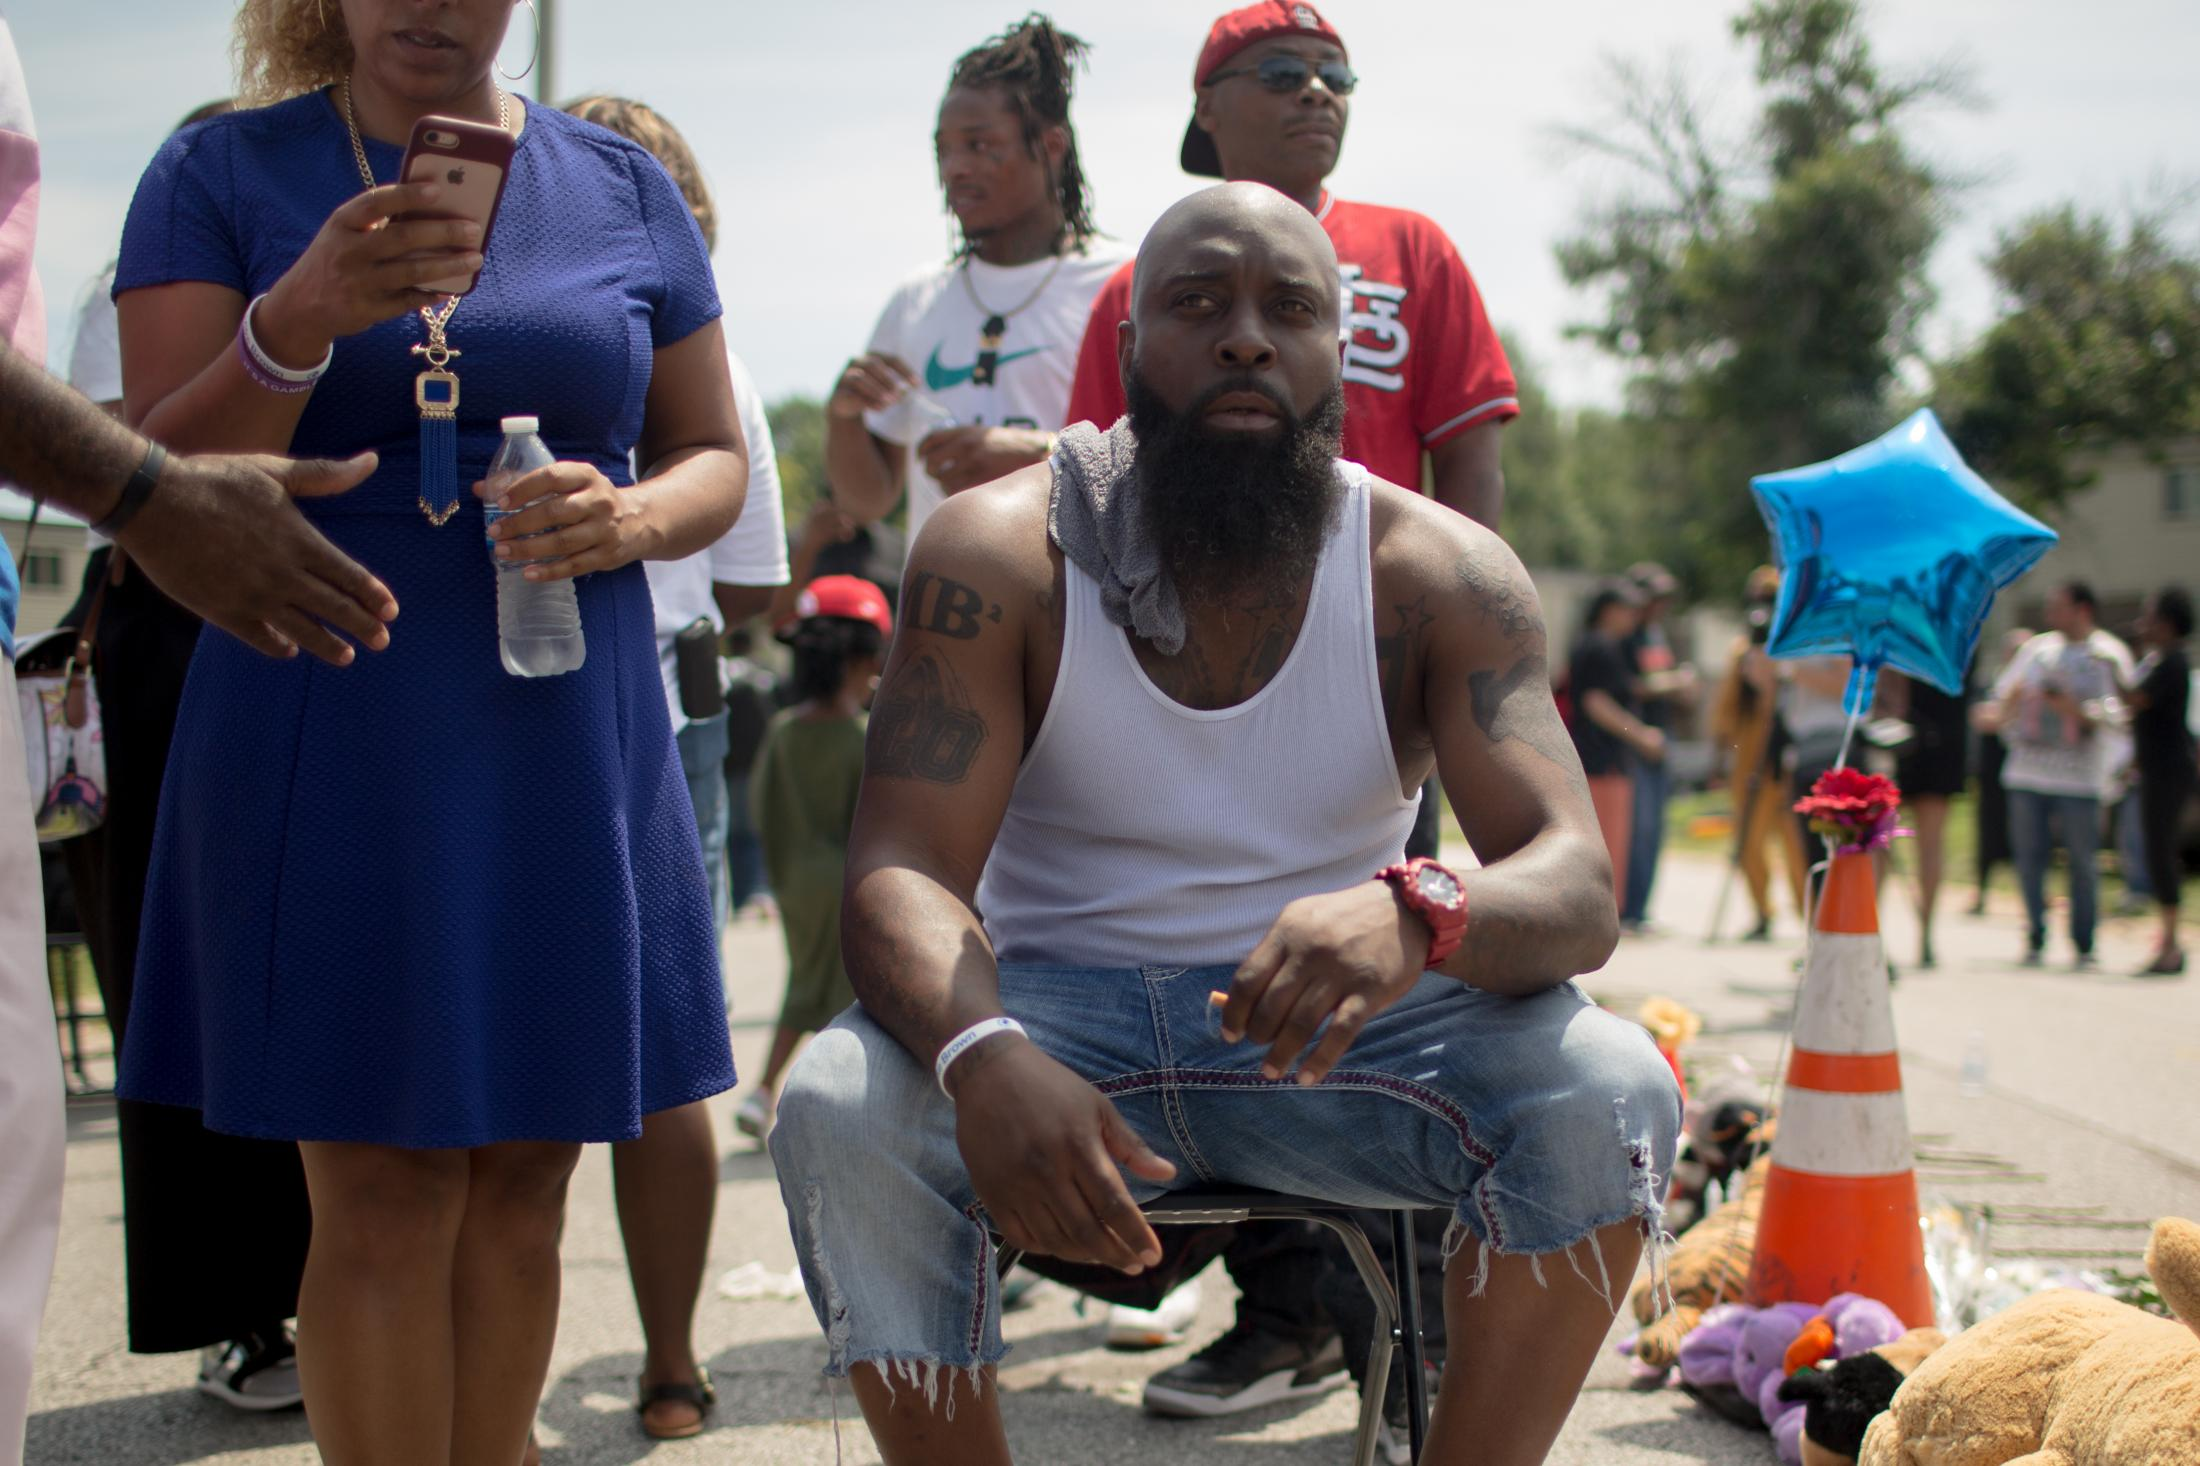 Michael Brown Sr. sits next to a memorial placed for 5th annual Michael Brown Memorial Service at the Canfield Green apartment complex in Ferguson on Friday, May 9, 2019.